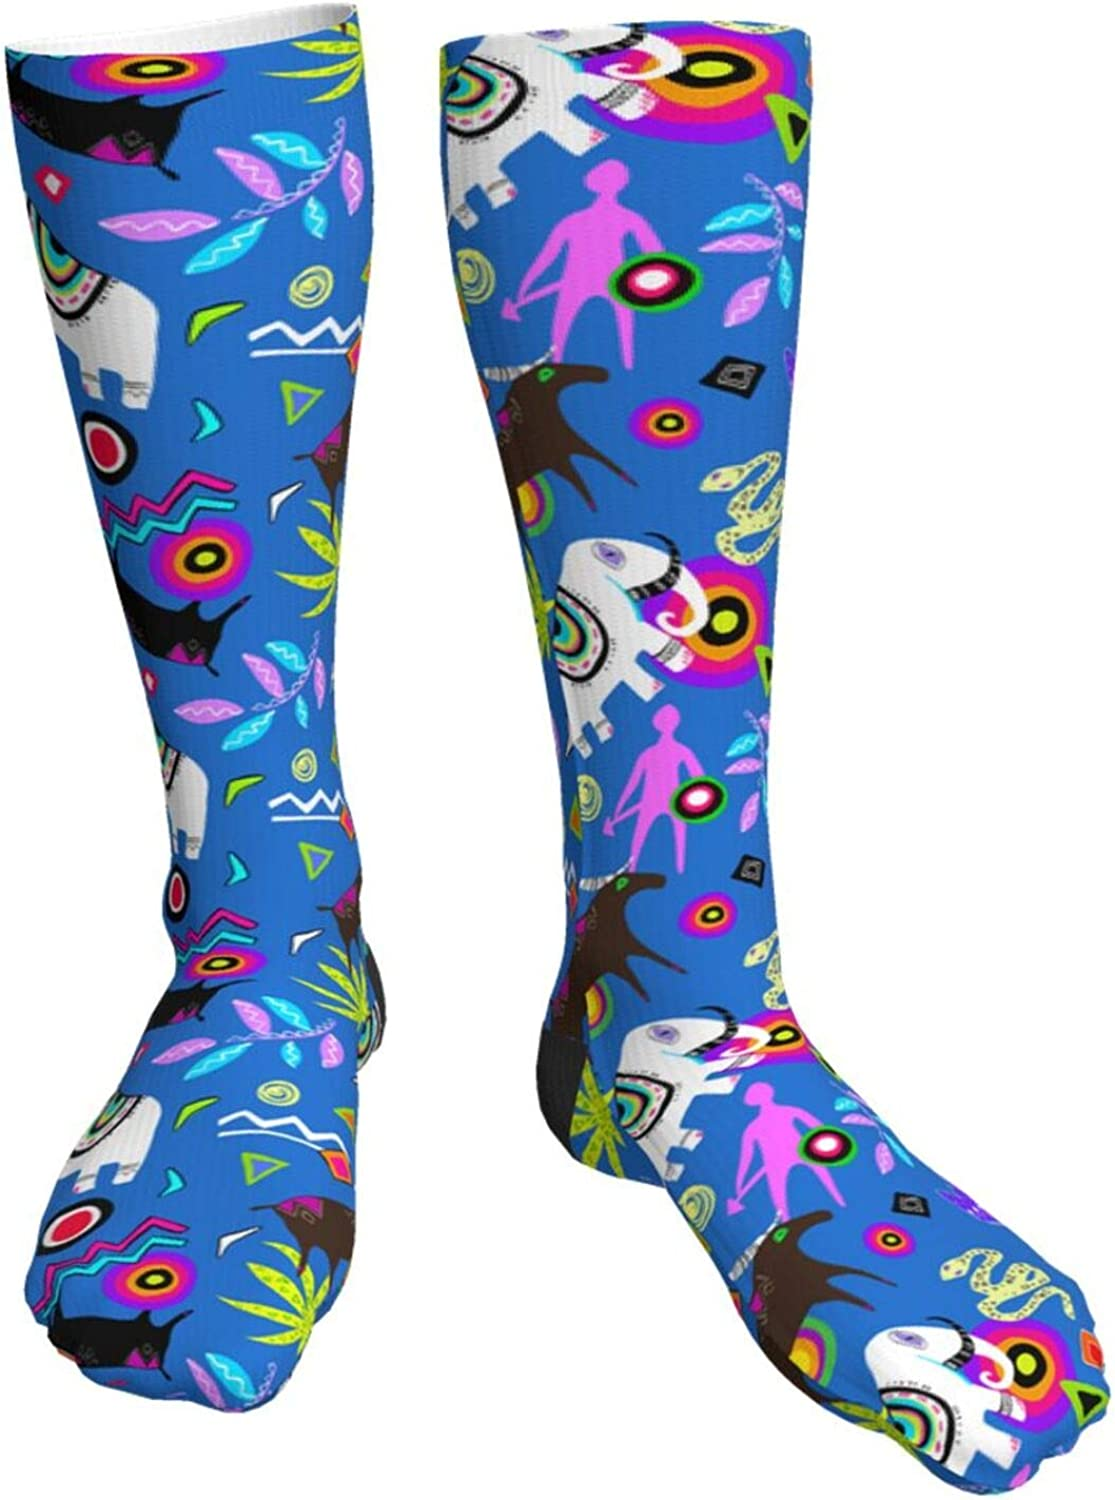 Max 54% OFF Abstract Geometric Novelty Crazy Dealing full price reduction Crew Socks Tube Knee High